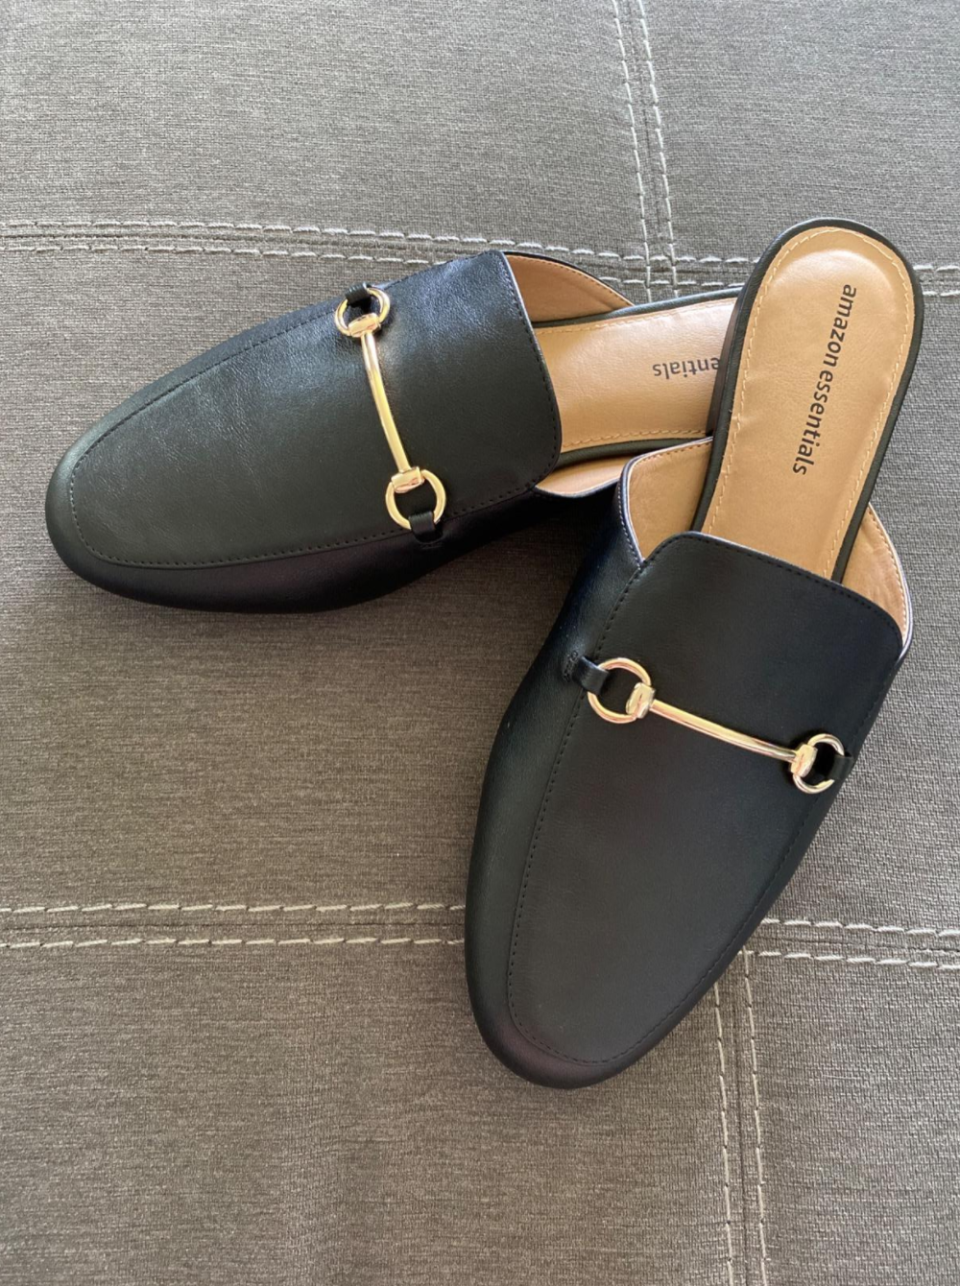 Amazon customer review photo of the Essentials June Mule by shopper M Kelly